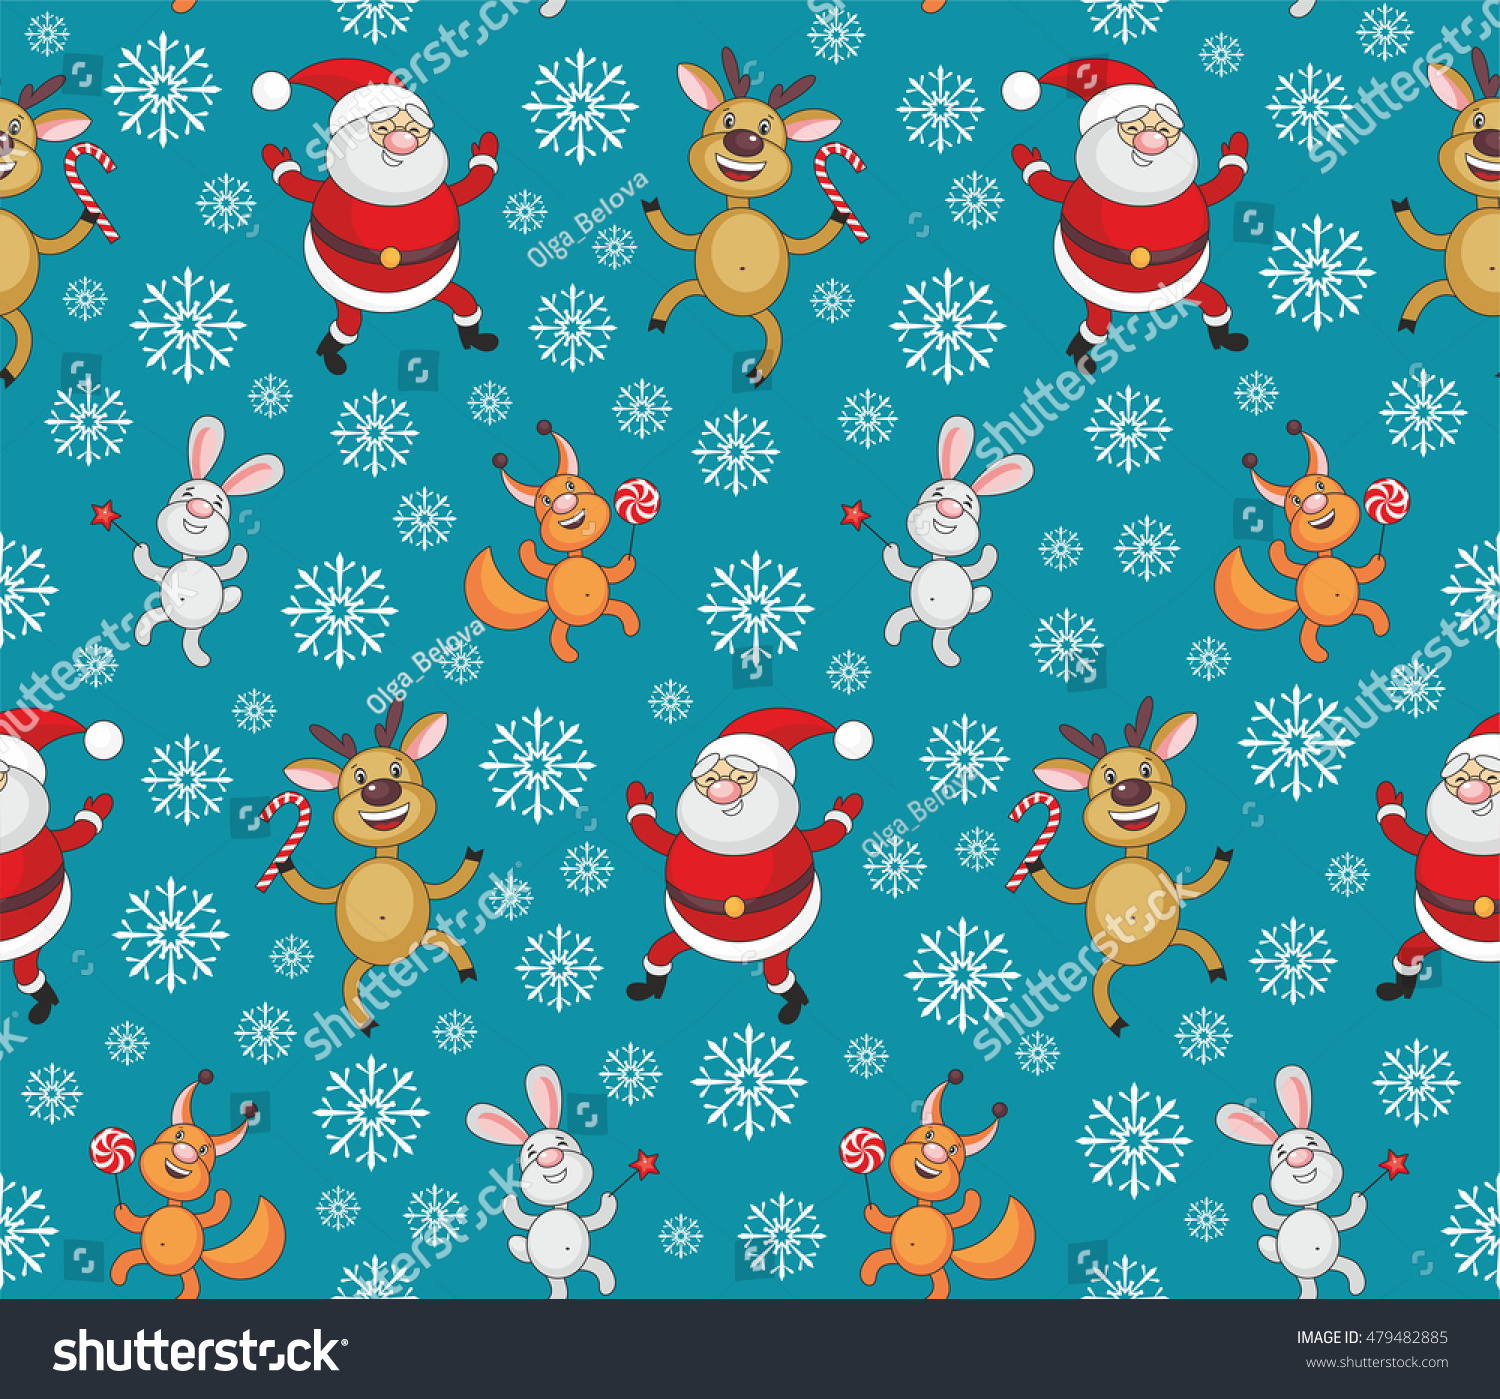 Christmas Seamless Pattern Image Funny Animals Stock Vector (Royalty ...